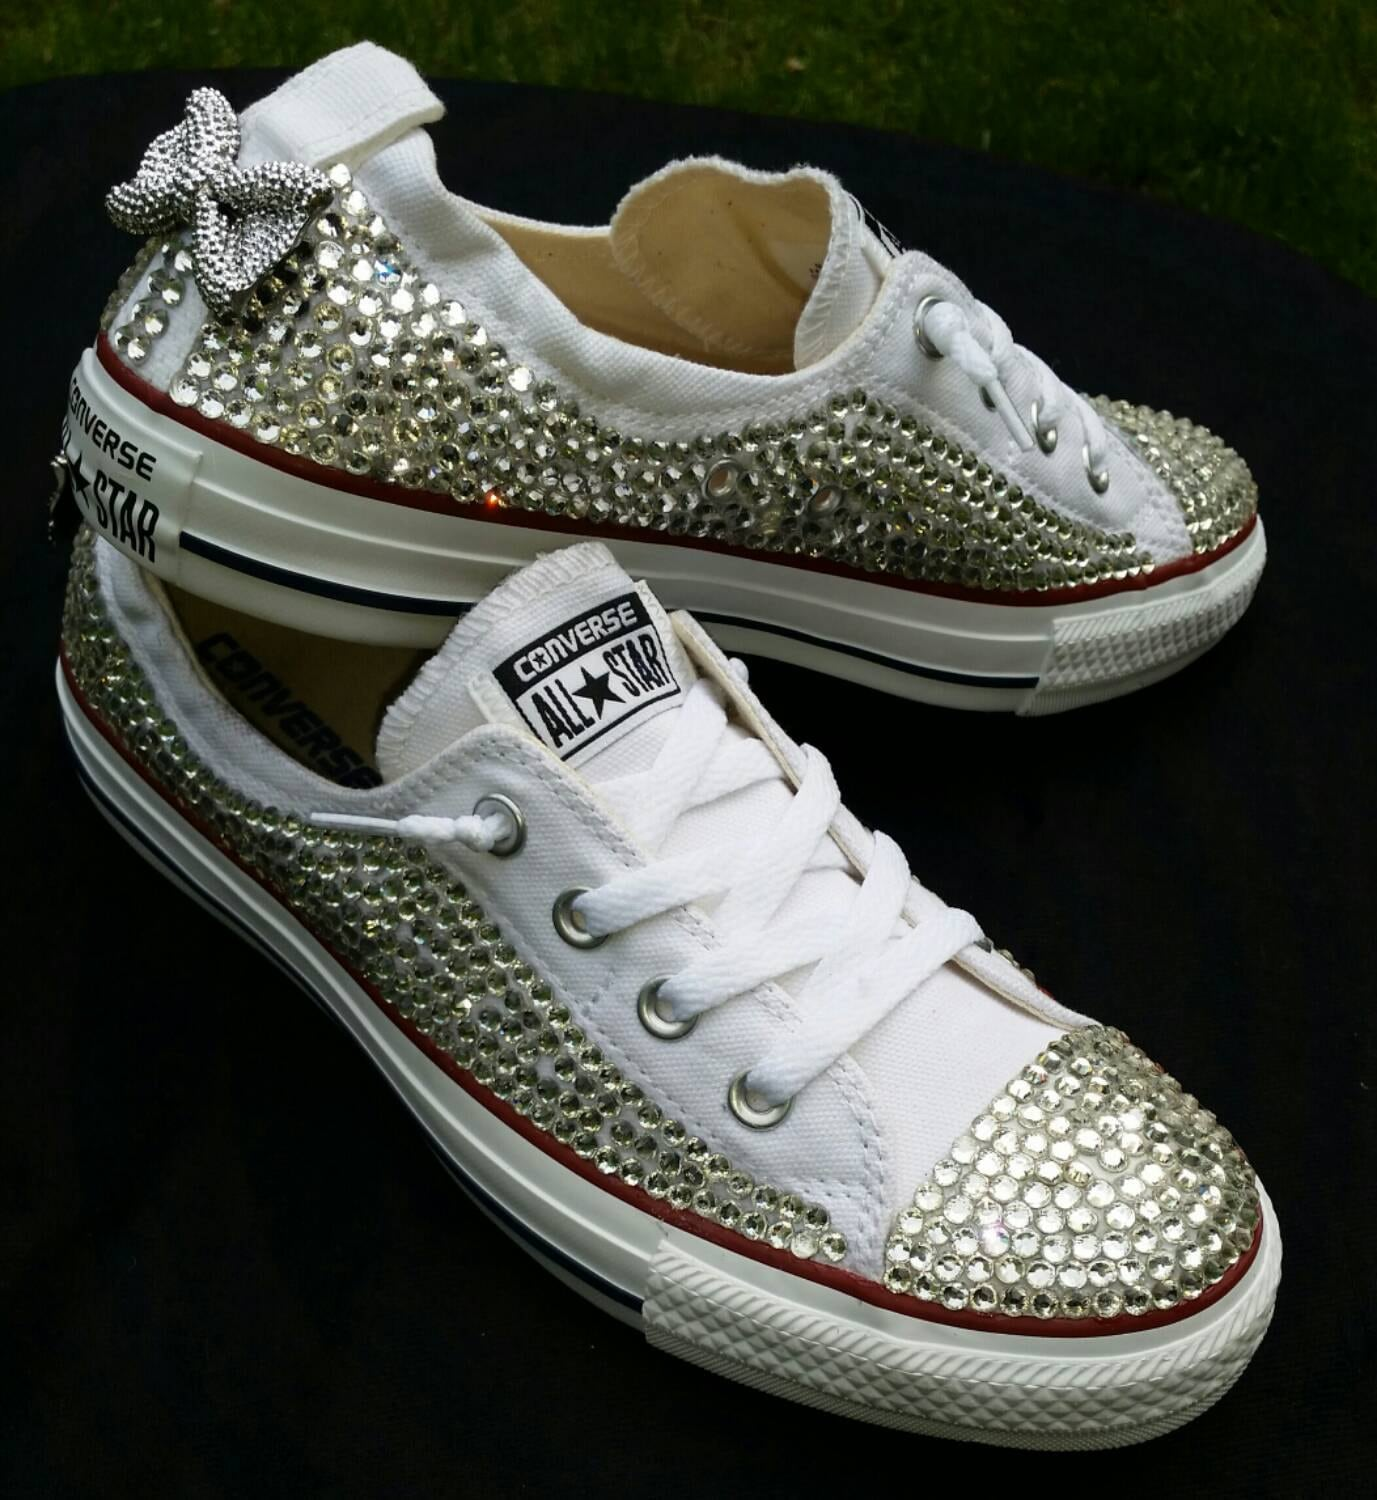 c351a4e965141c ... australia full bling wedding converse bridal sneakers custom converse  etsy f6432 6d466